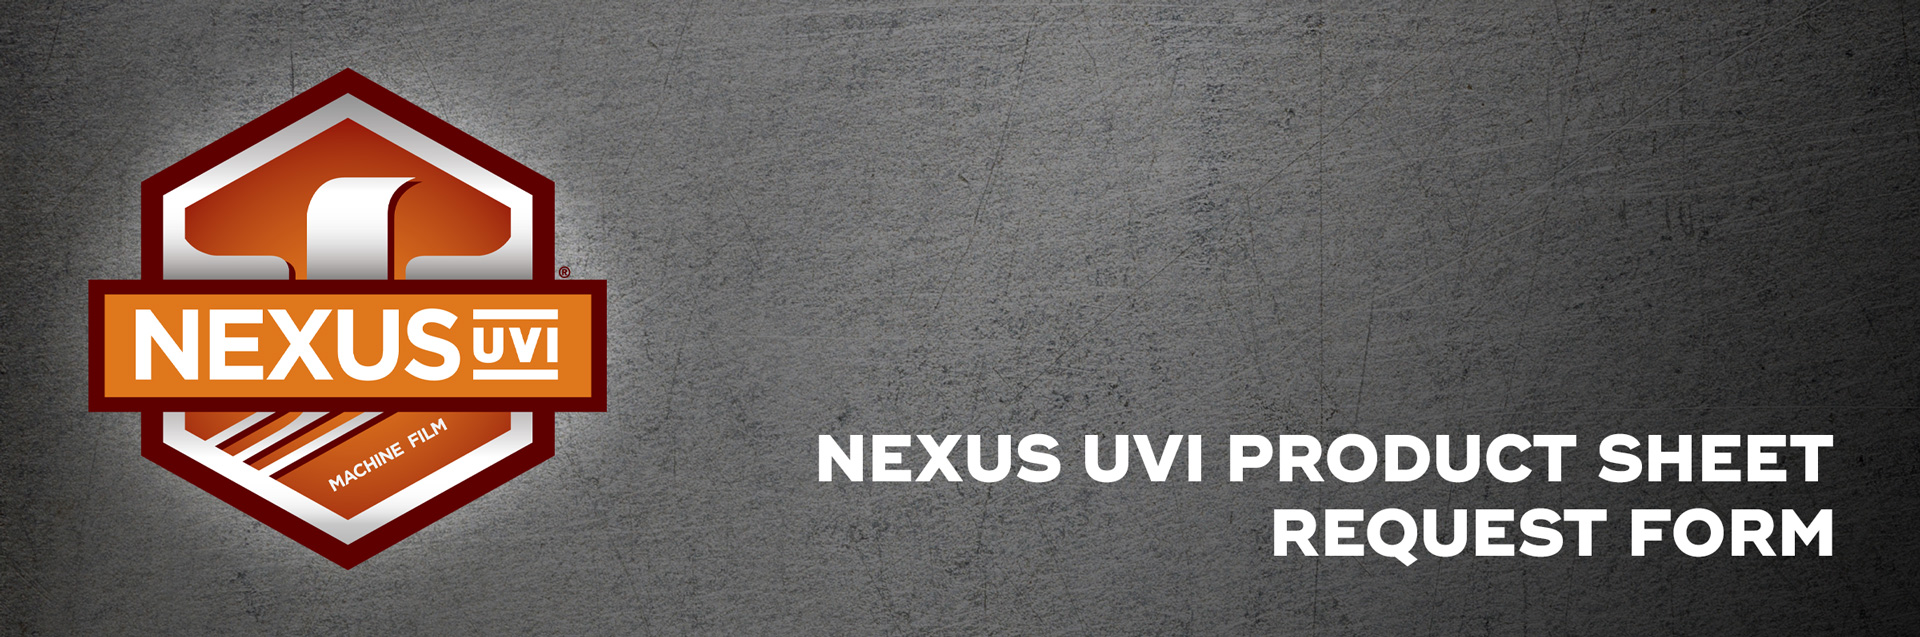 Nexus-UVI-Product-Sheet-Request-Form